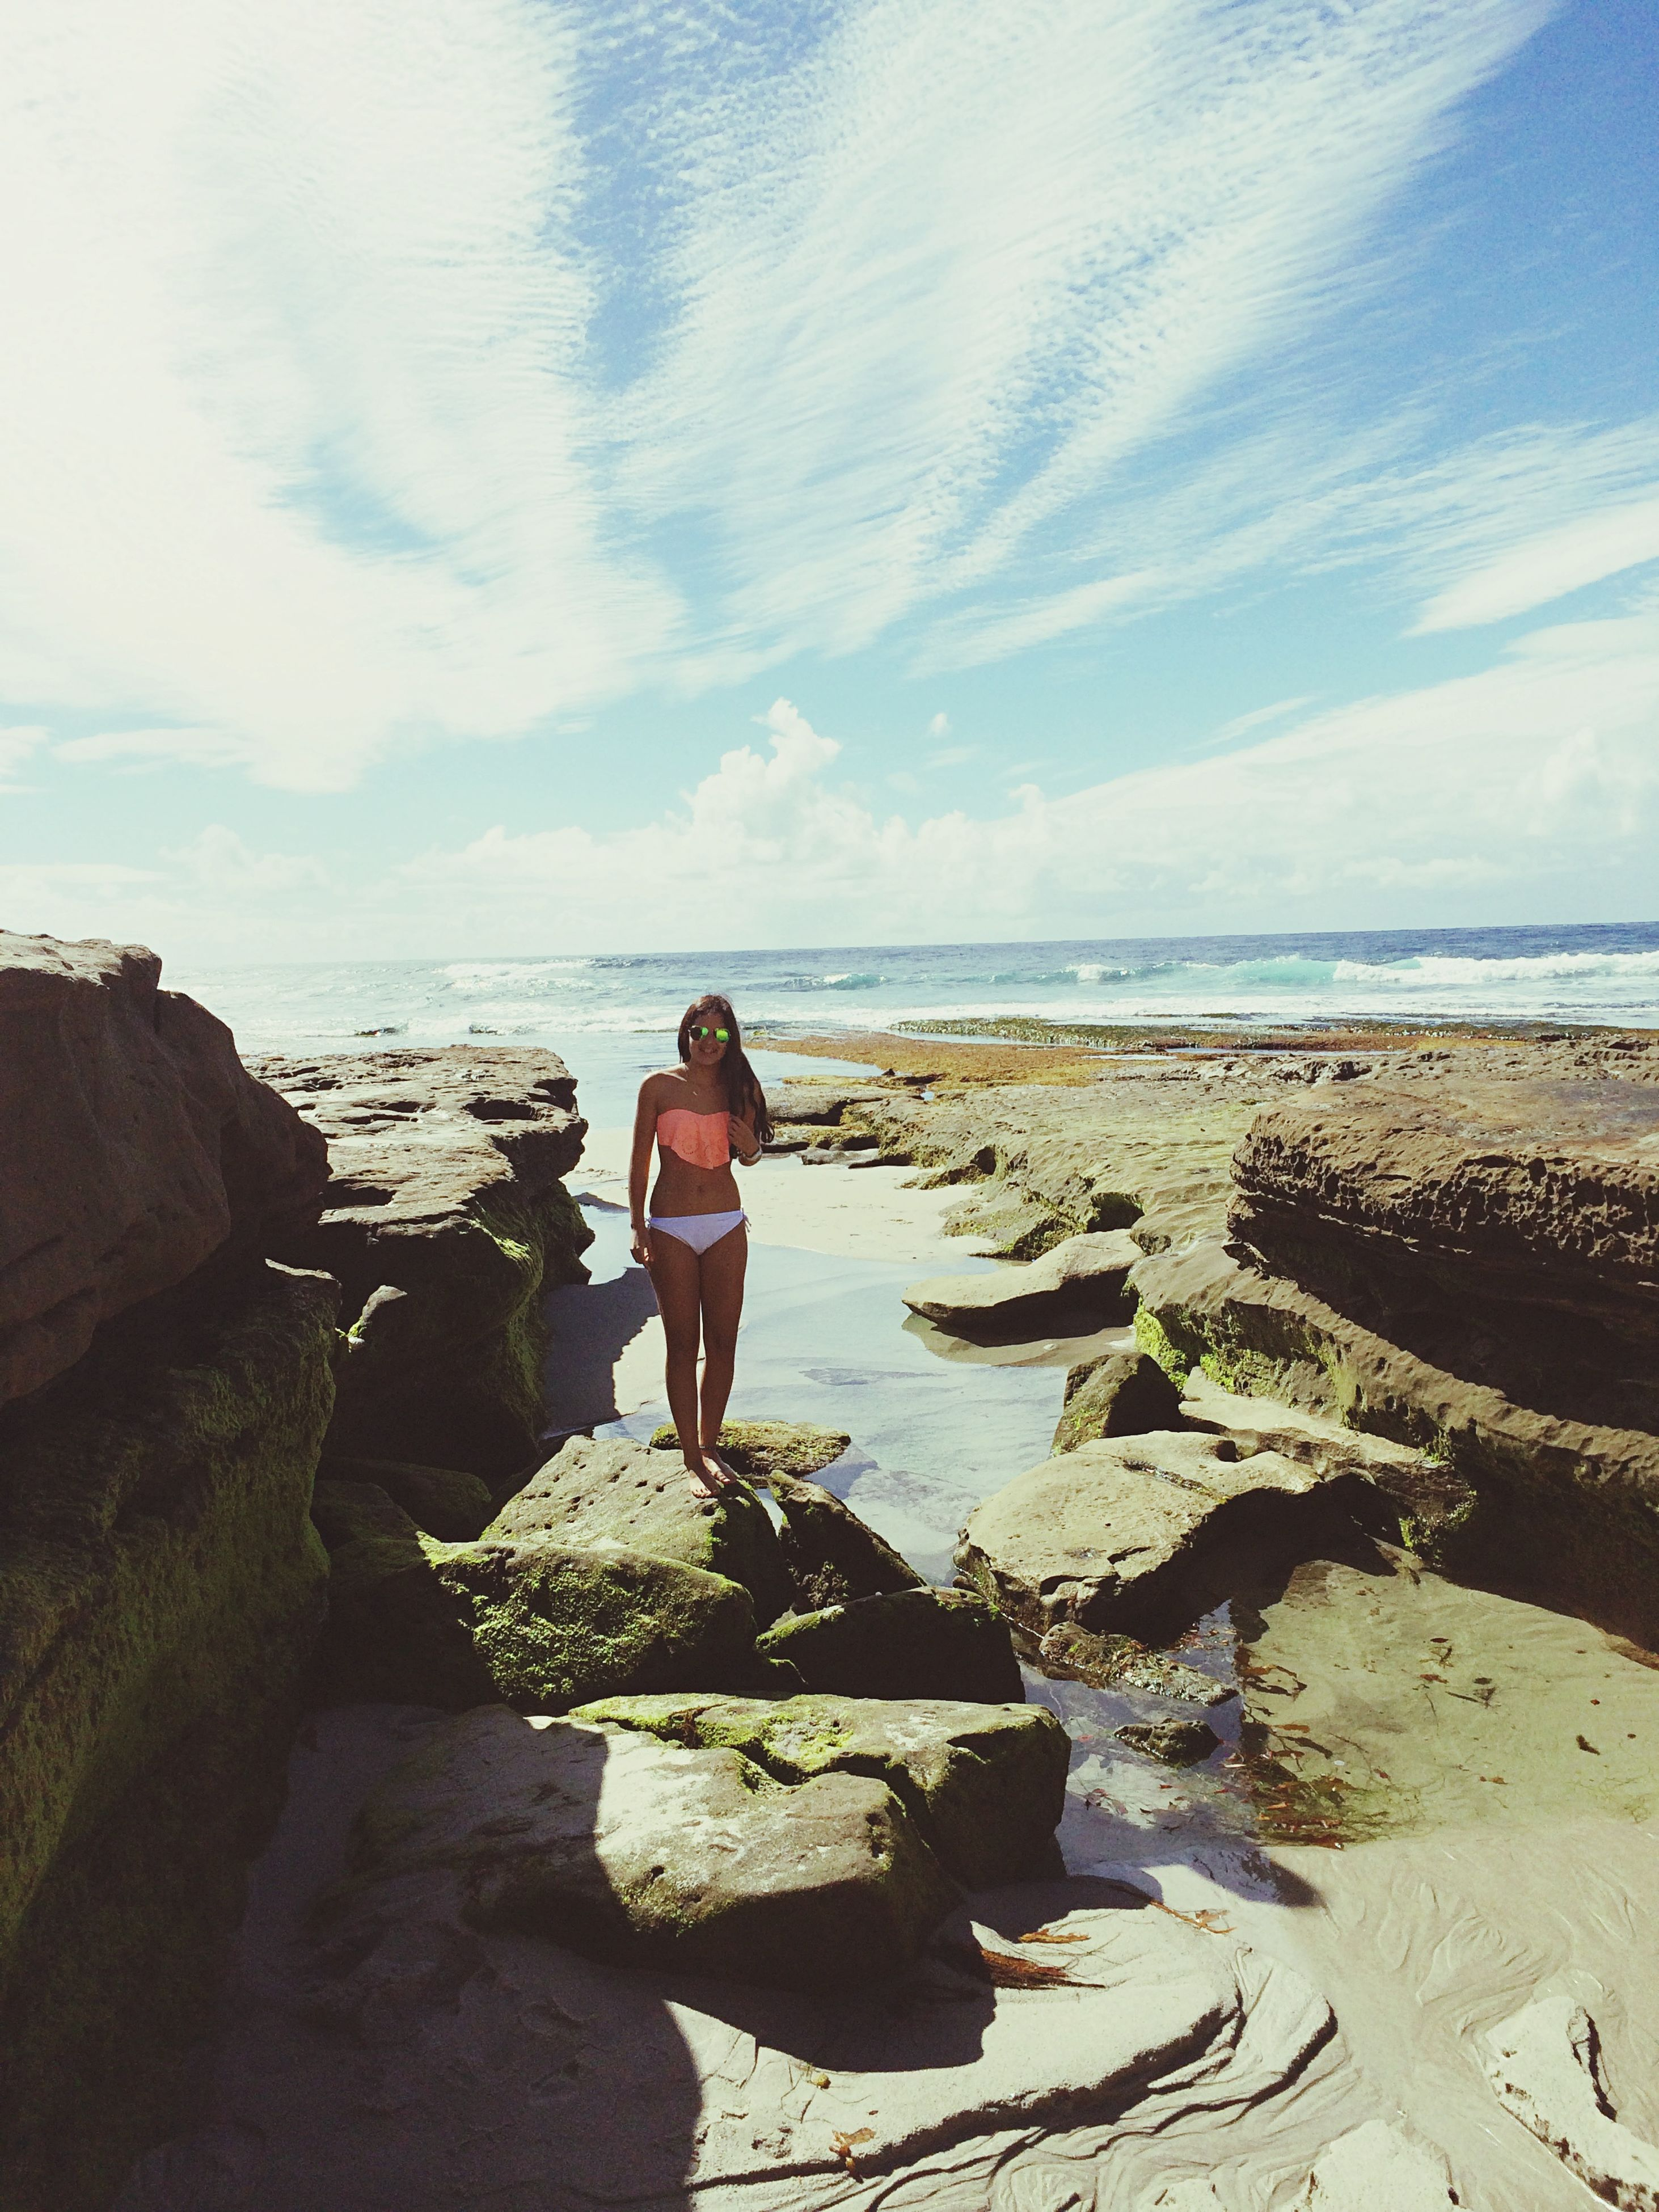 water, sky, sea, lifestyles, horizon over water, leisure activity, beach, rear view, full length, standing, cloud - sky, shore, rock - object, tranquility, casual clothing, nature, scenics, beauty in nature